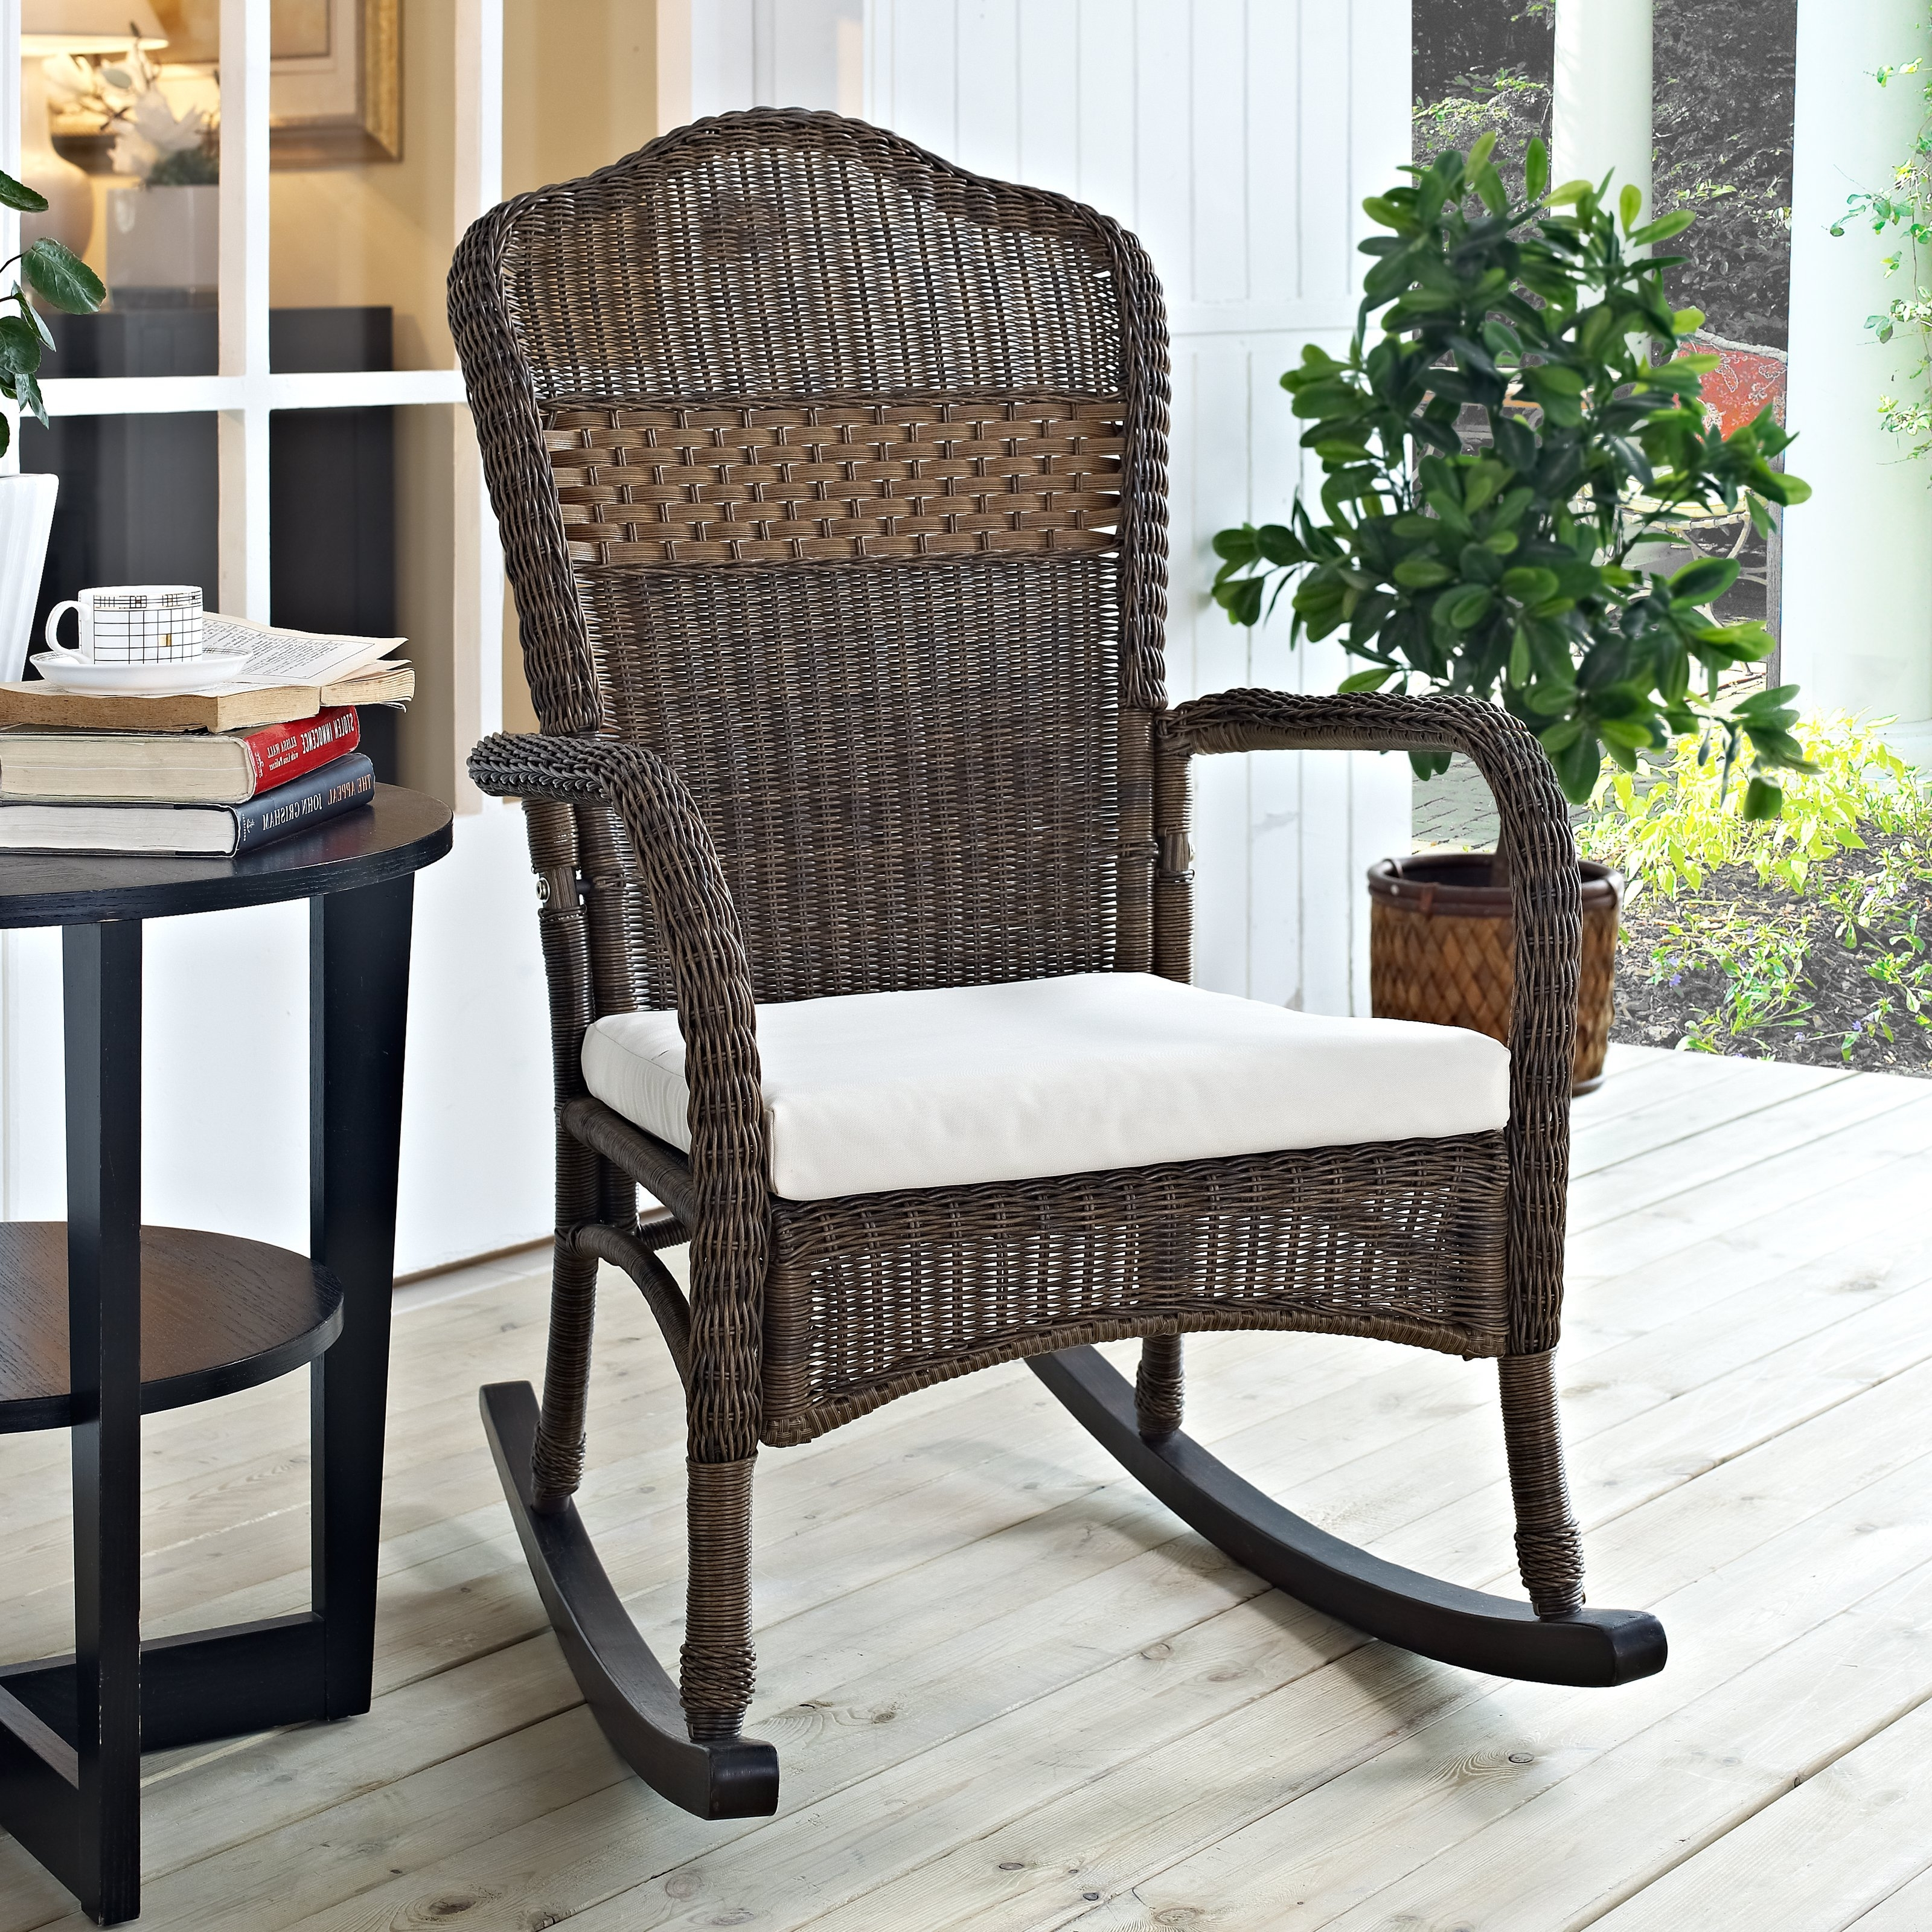 Unique Outdoor Rocking Chairs With Regard To Well Known Coral Coast Mocha Resin Wicker Rocking Chair With Beige Cushion (View 4 of 20)